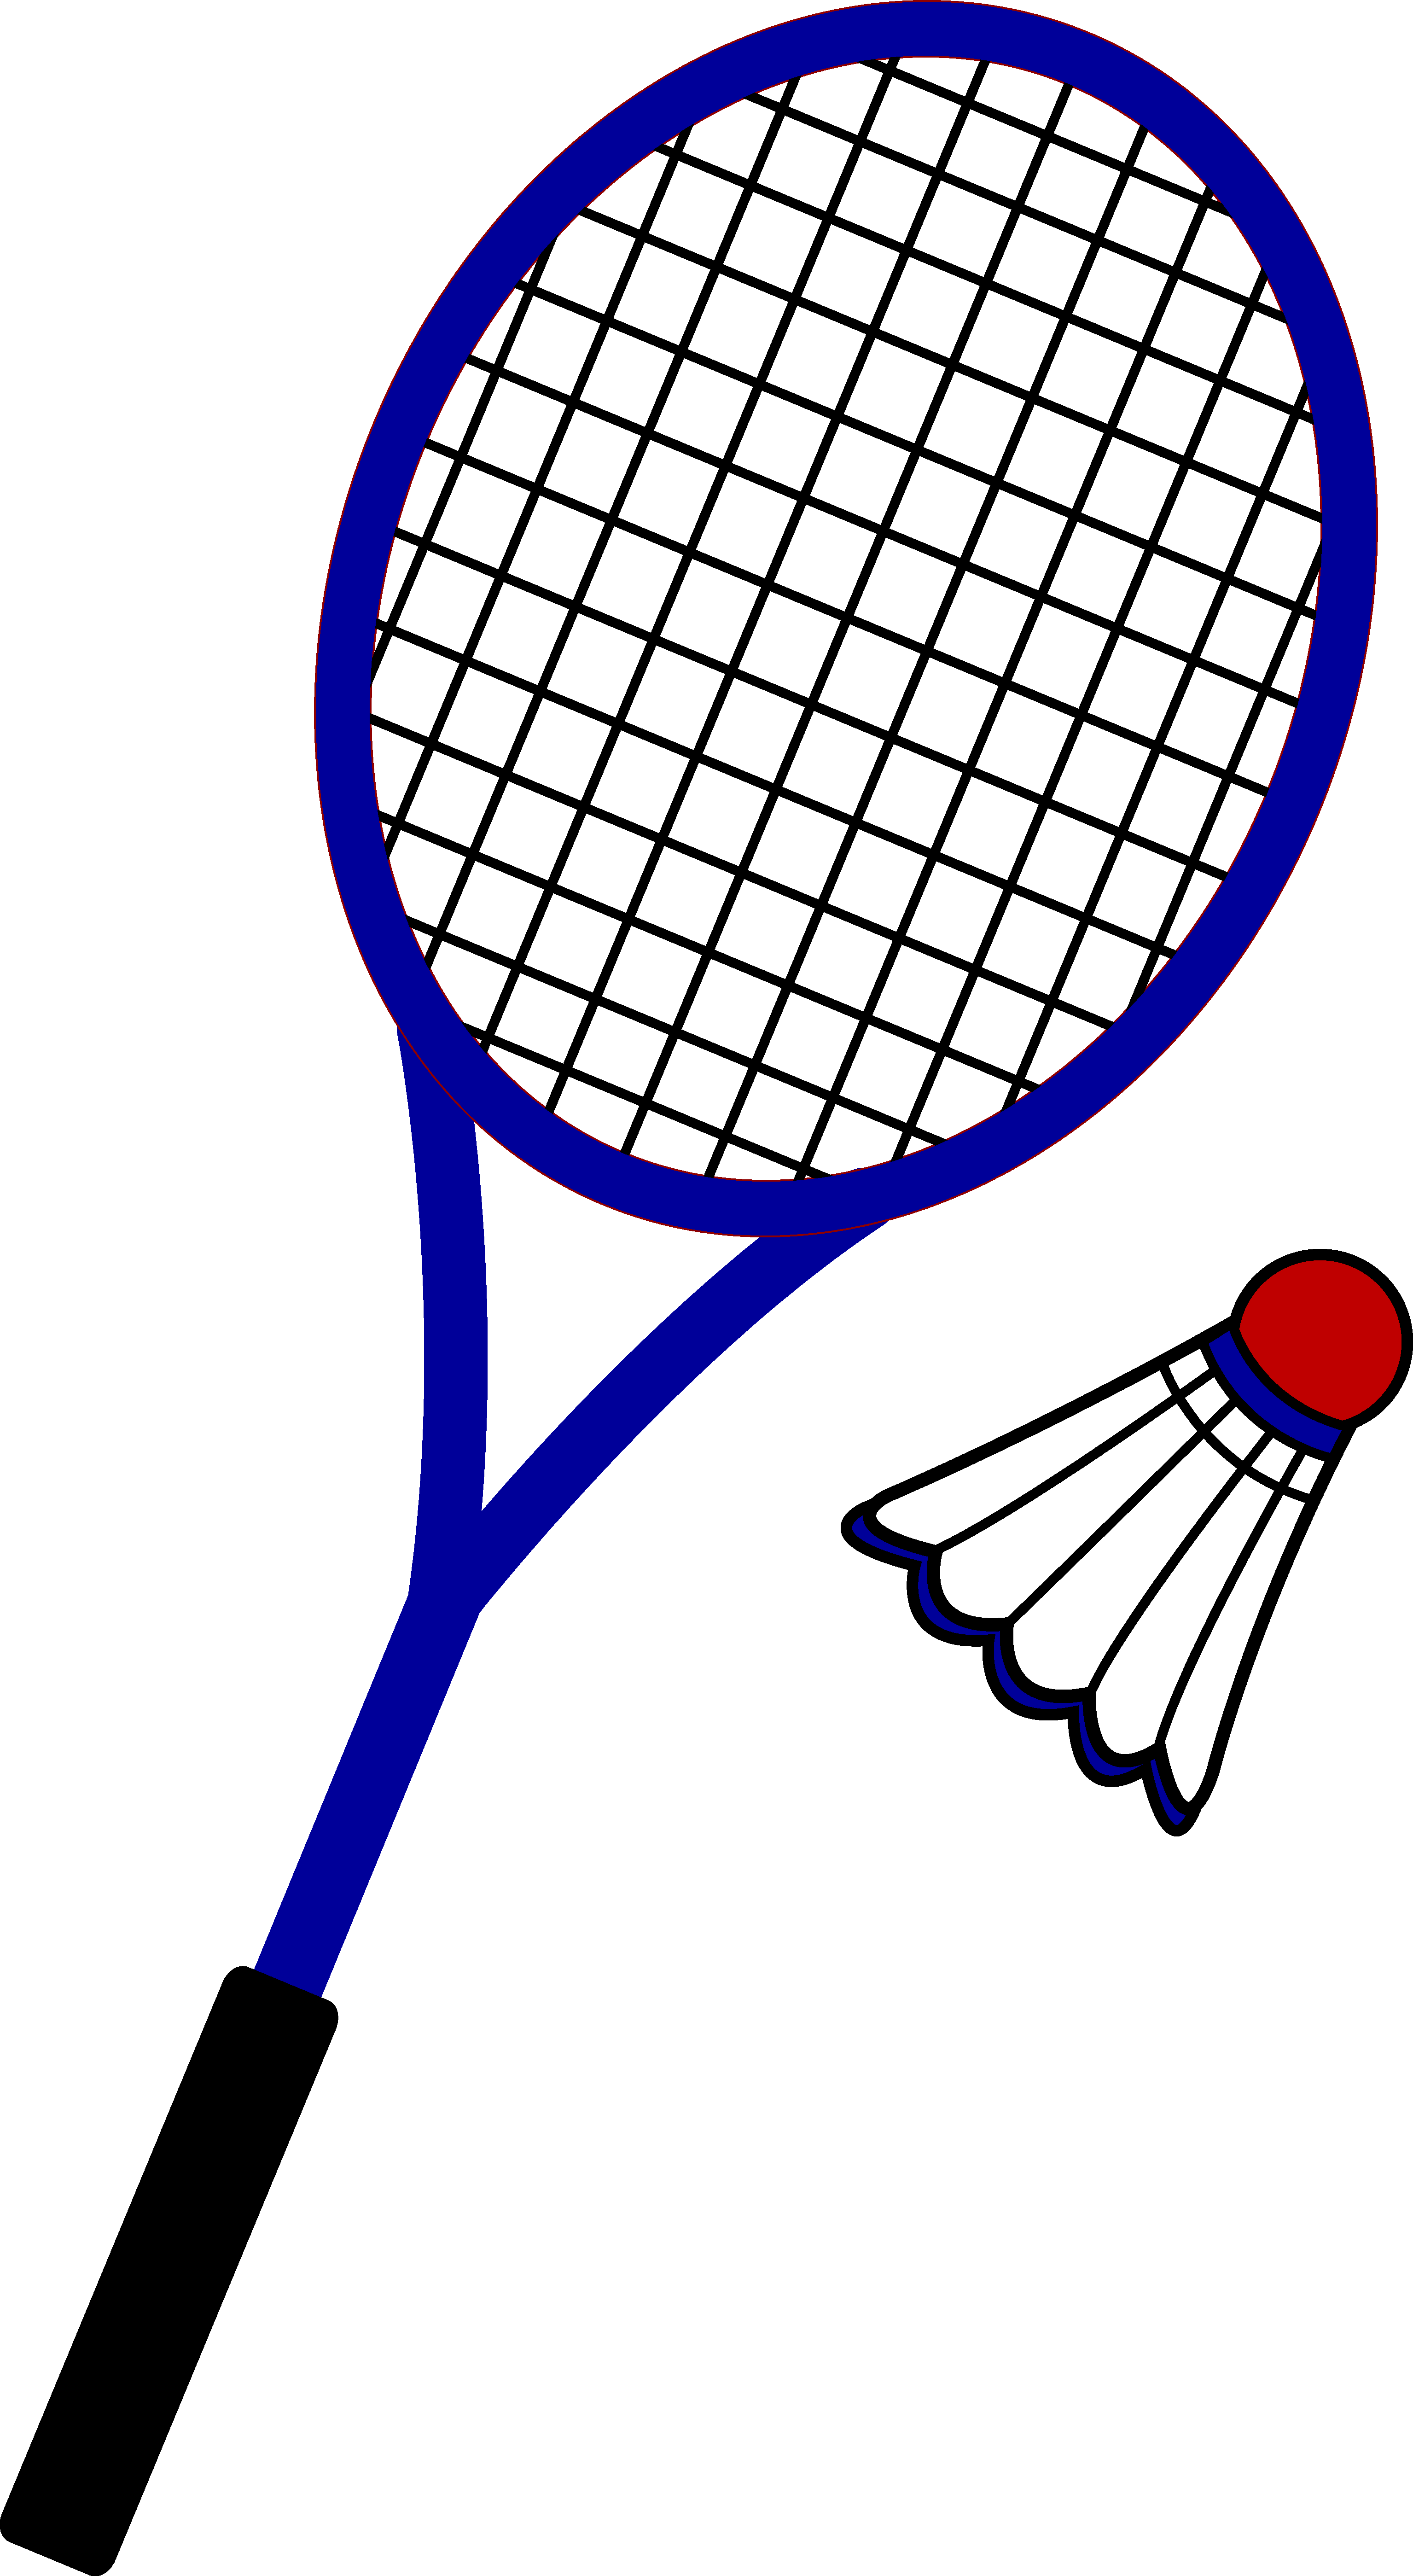 Racquet and birdie free. Badminton clipart graphic library download